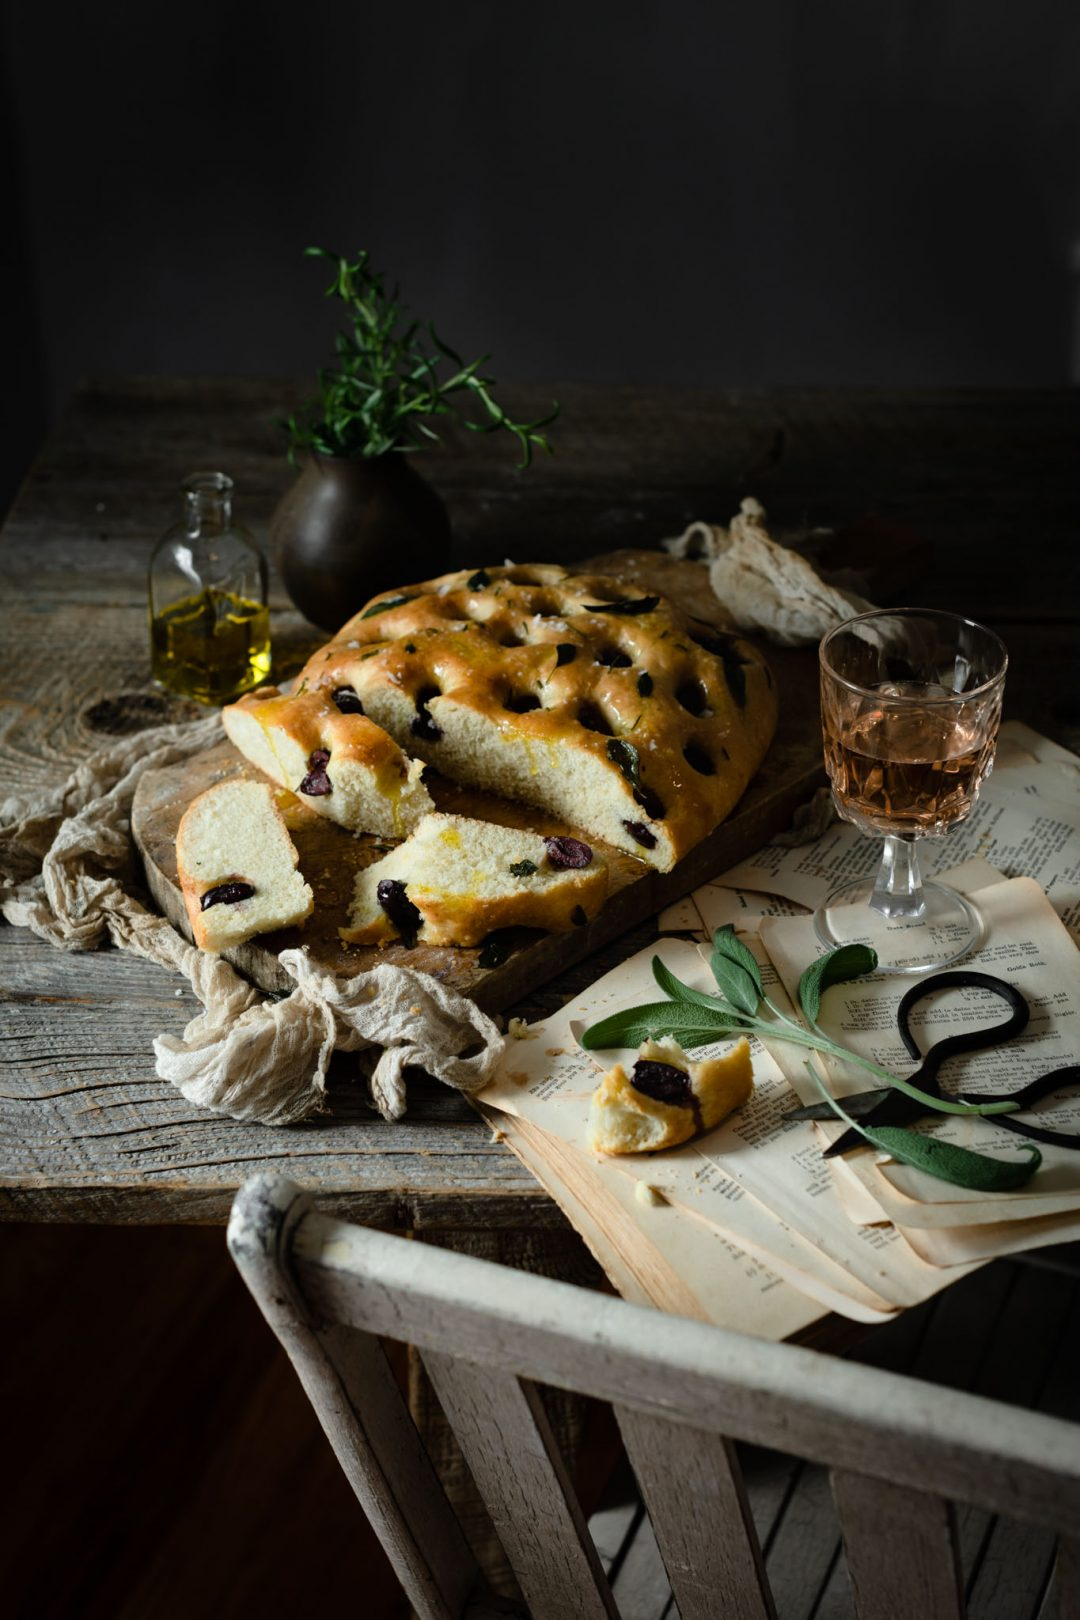 Focacci olive bread sliced on table.